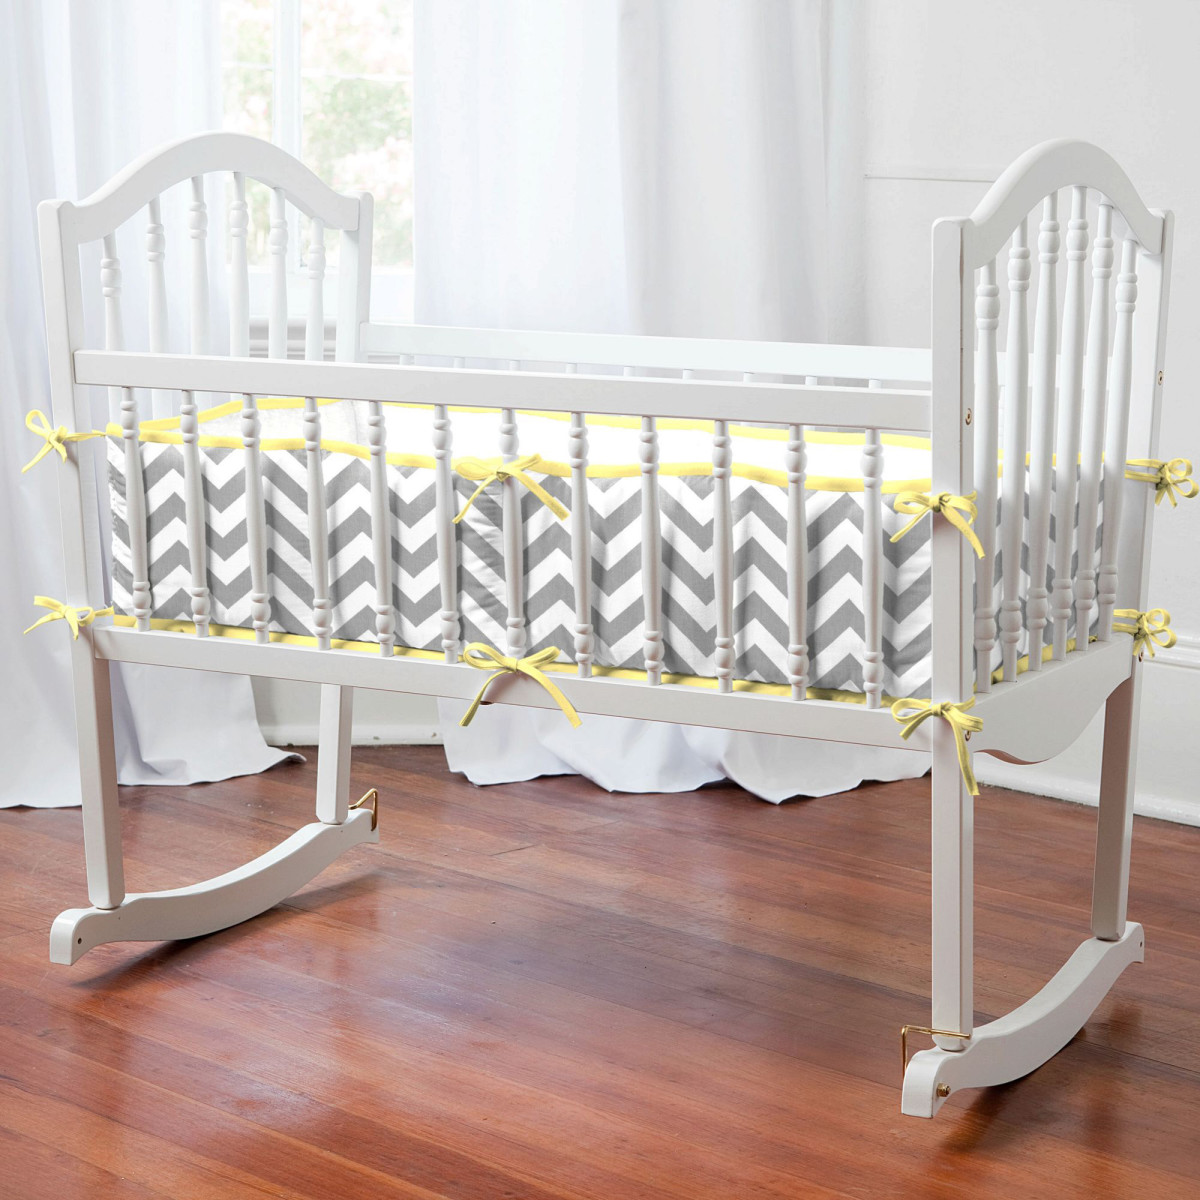 This is a modern cradle, but when I was young and the place where I come from, cradles were a lot simpler, as long as they were large enough safe enough and could be rocked; and a mother was there to sing and rock it.